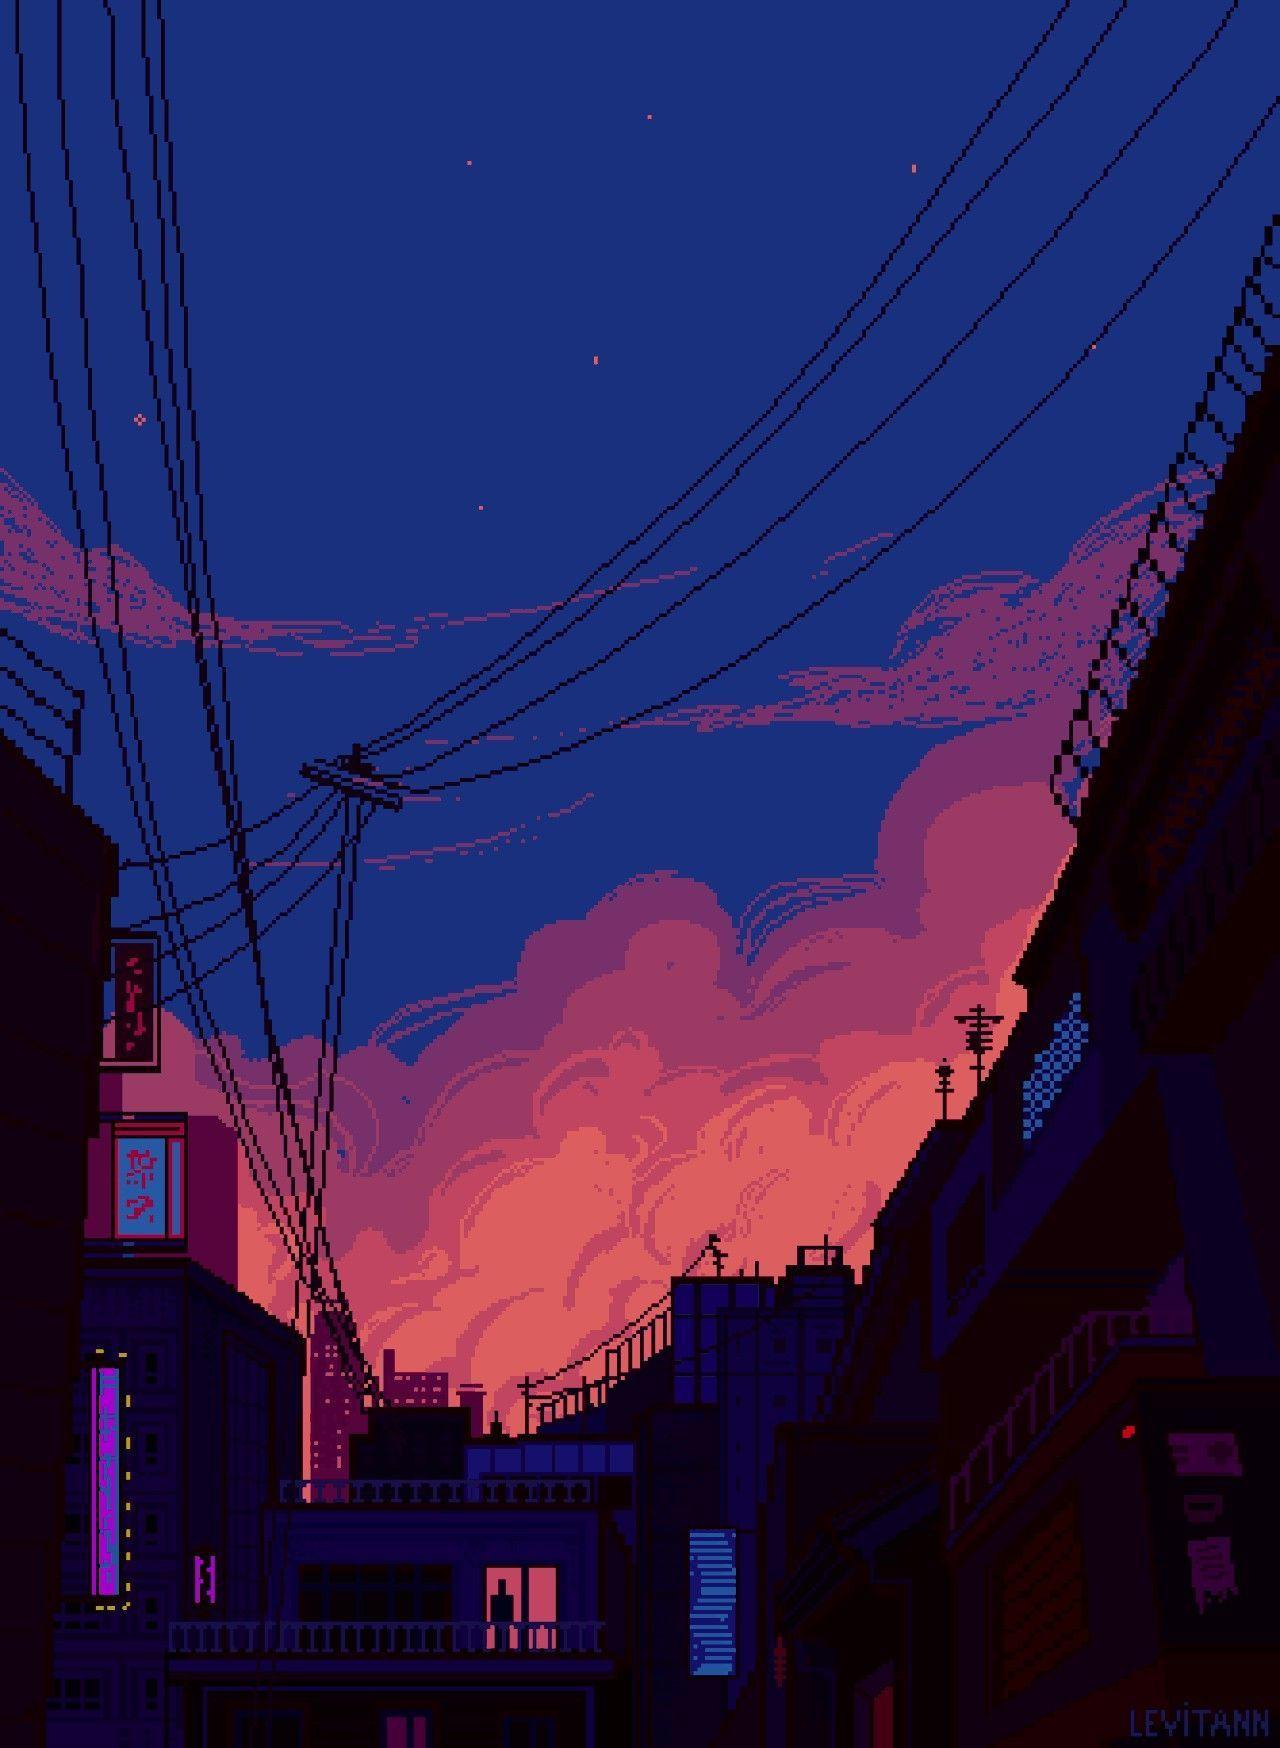 anime aesthetic painting wallpapers